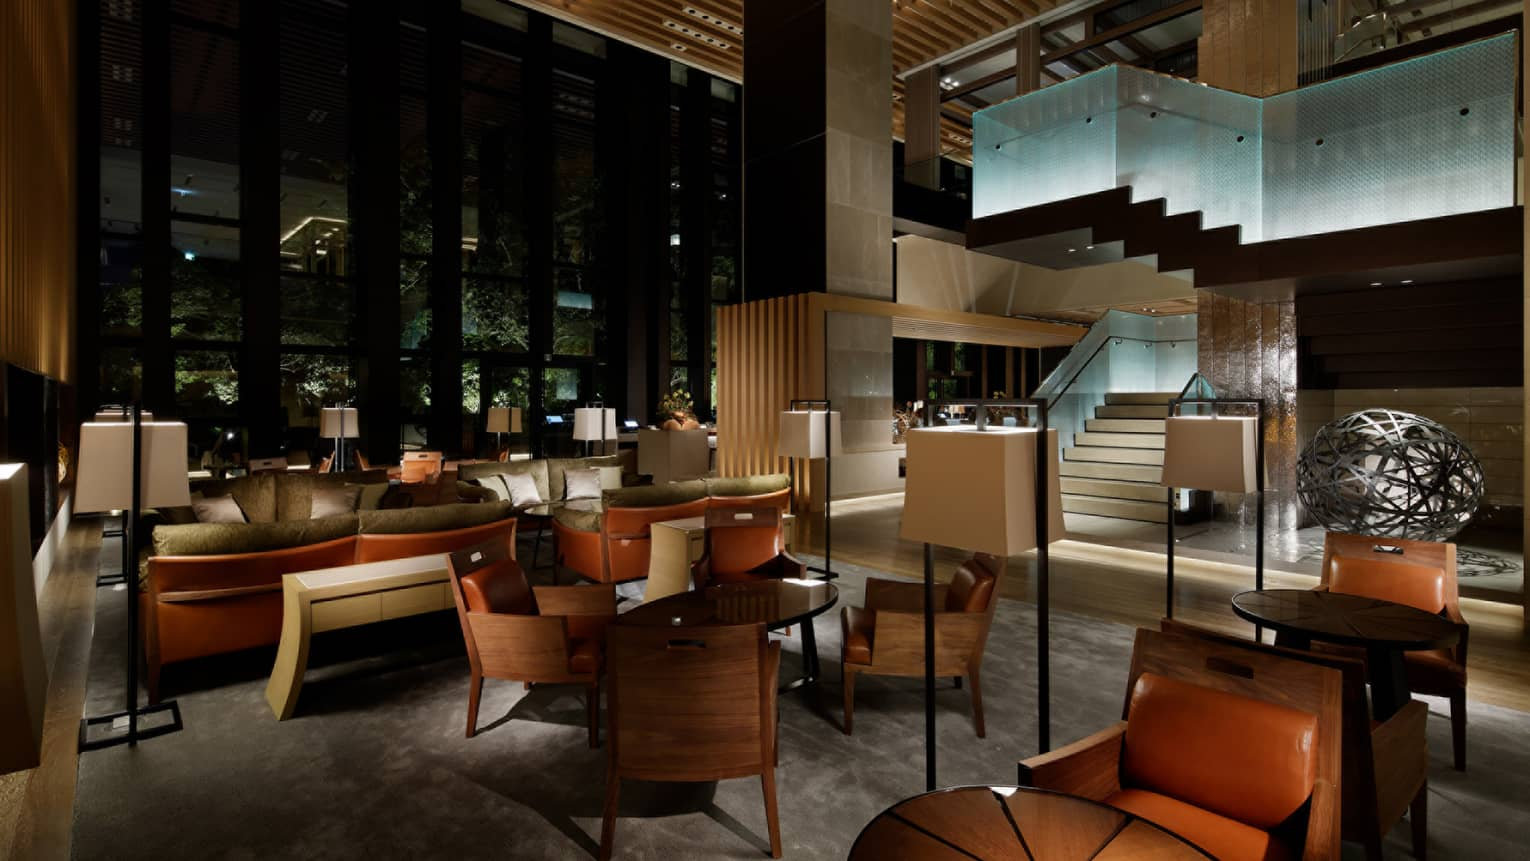 Brasserie dimly-lit dining room, brown leather chairs, tables, sofas under glass staircase